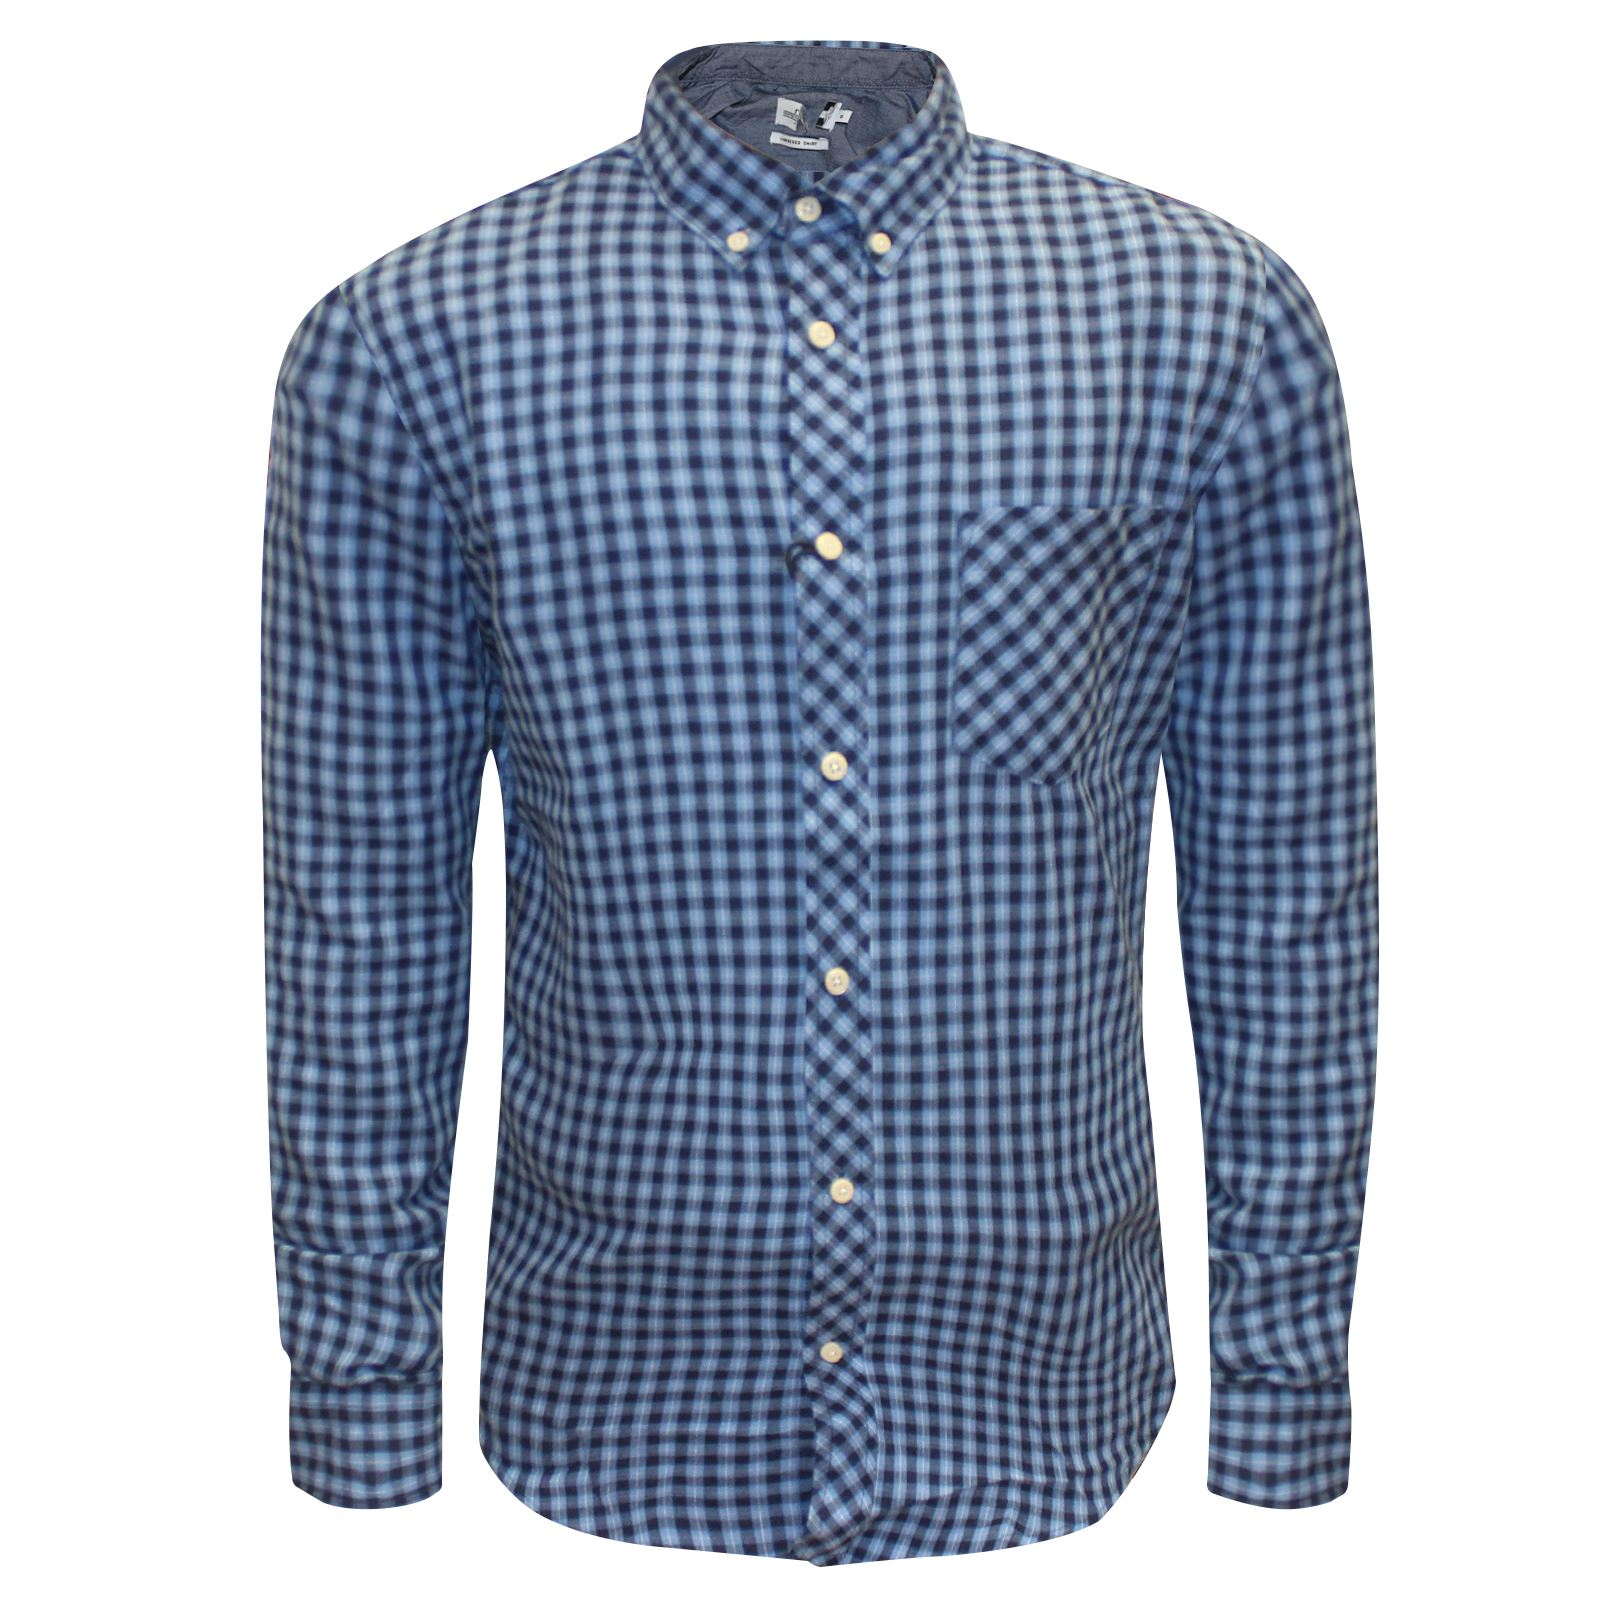 MENS Branded LONG SLEEVE SUMMER CHECK PRINT SMART COTTON ...